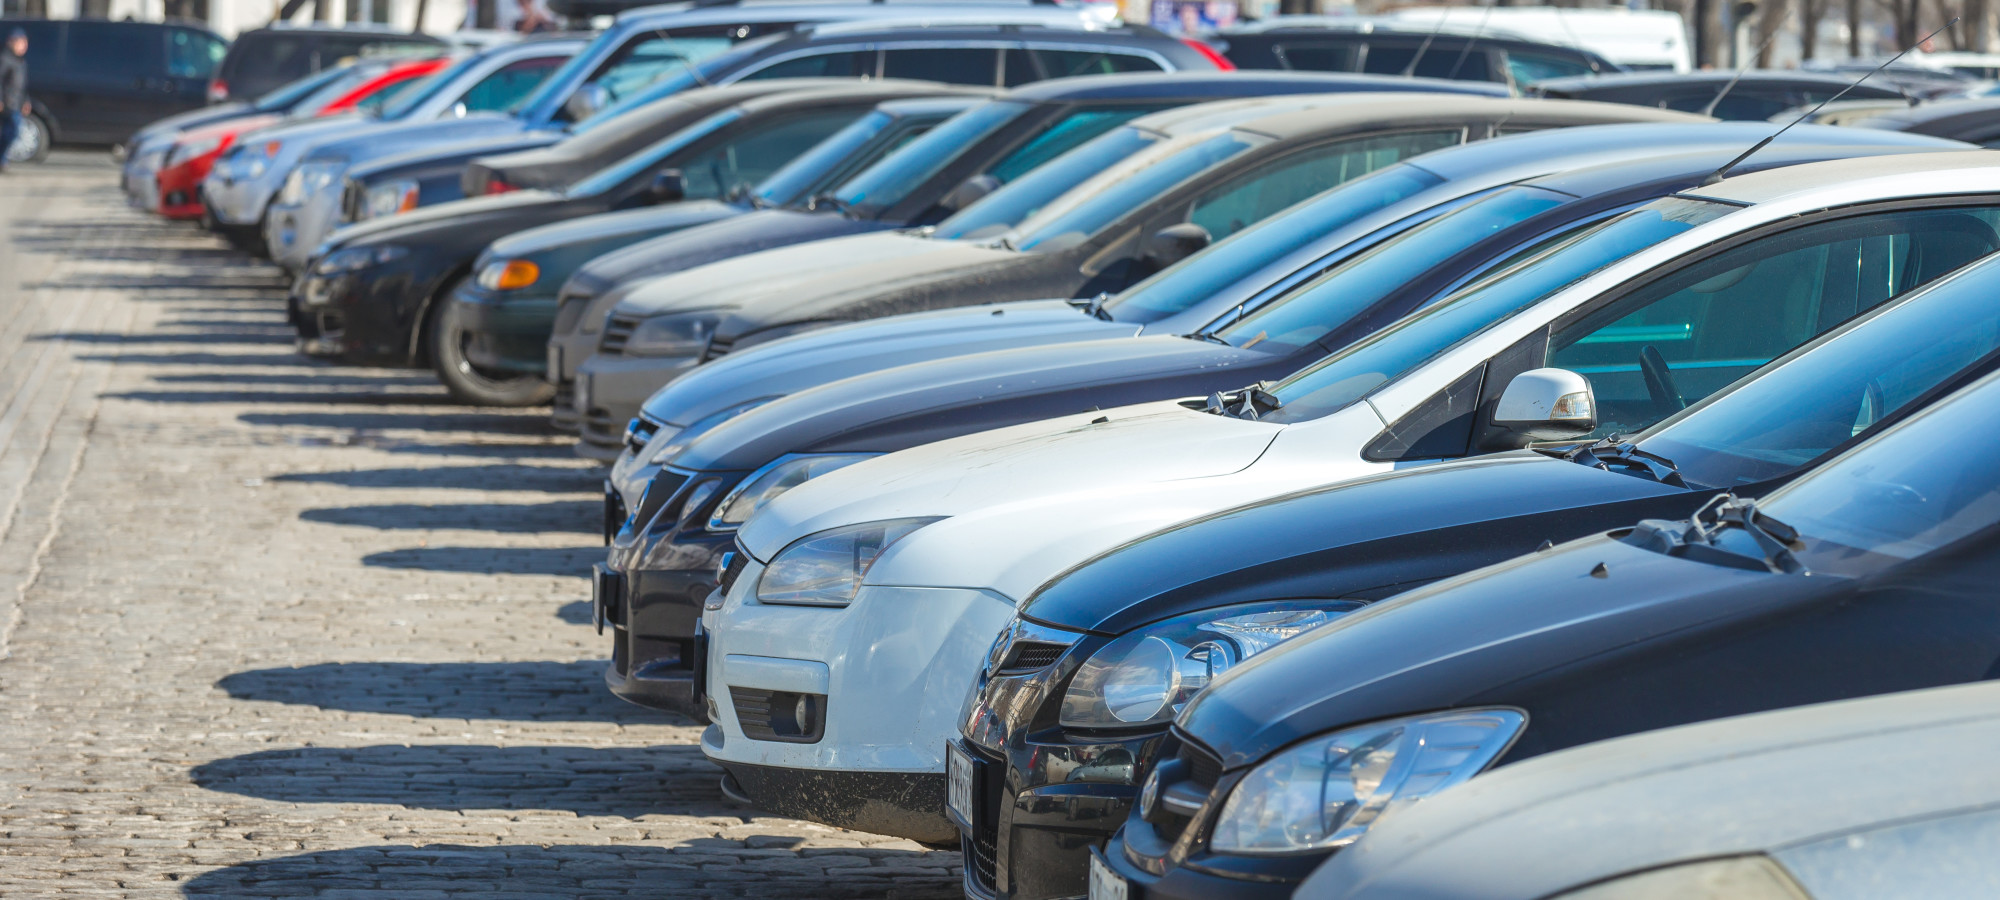 Mistakes with Vehicle Shopping